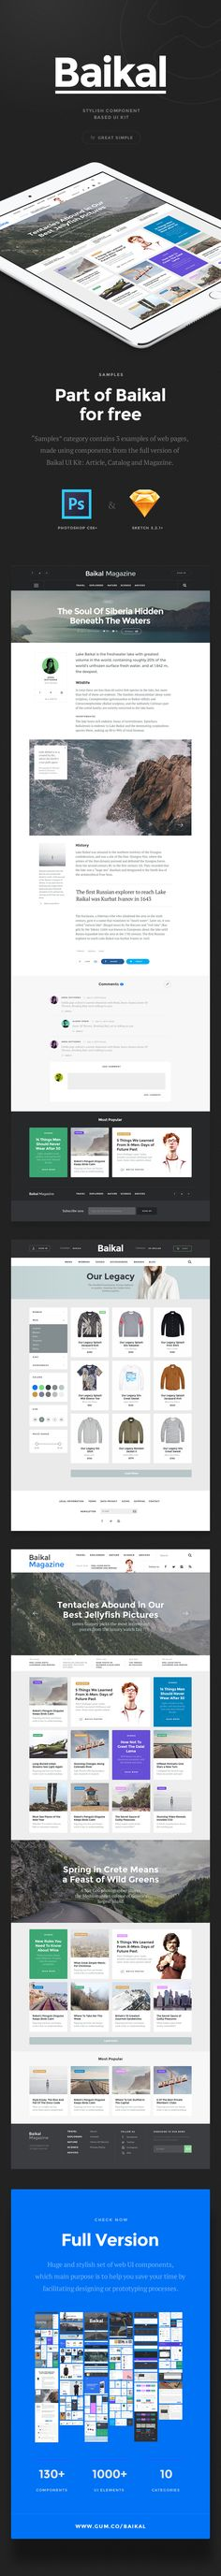 Baikal is a stylish, pixel perfect UI kit that you may find useful for developing your future web design projects...